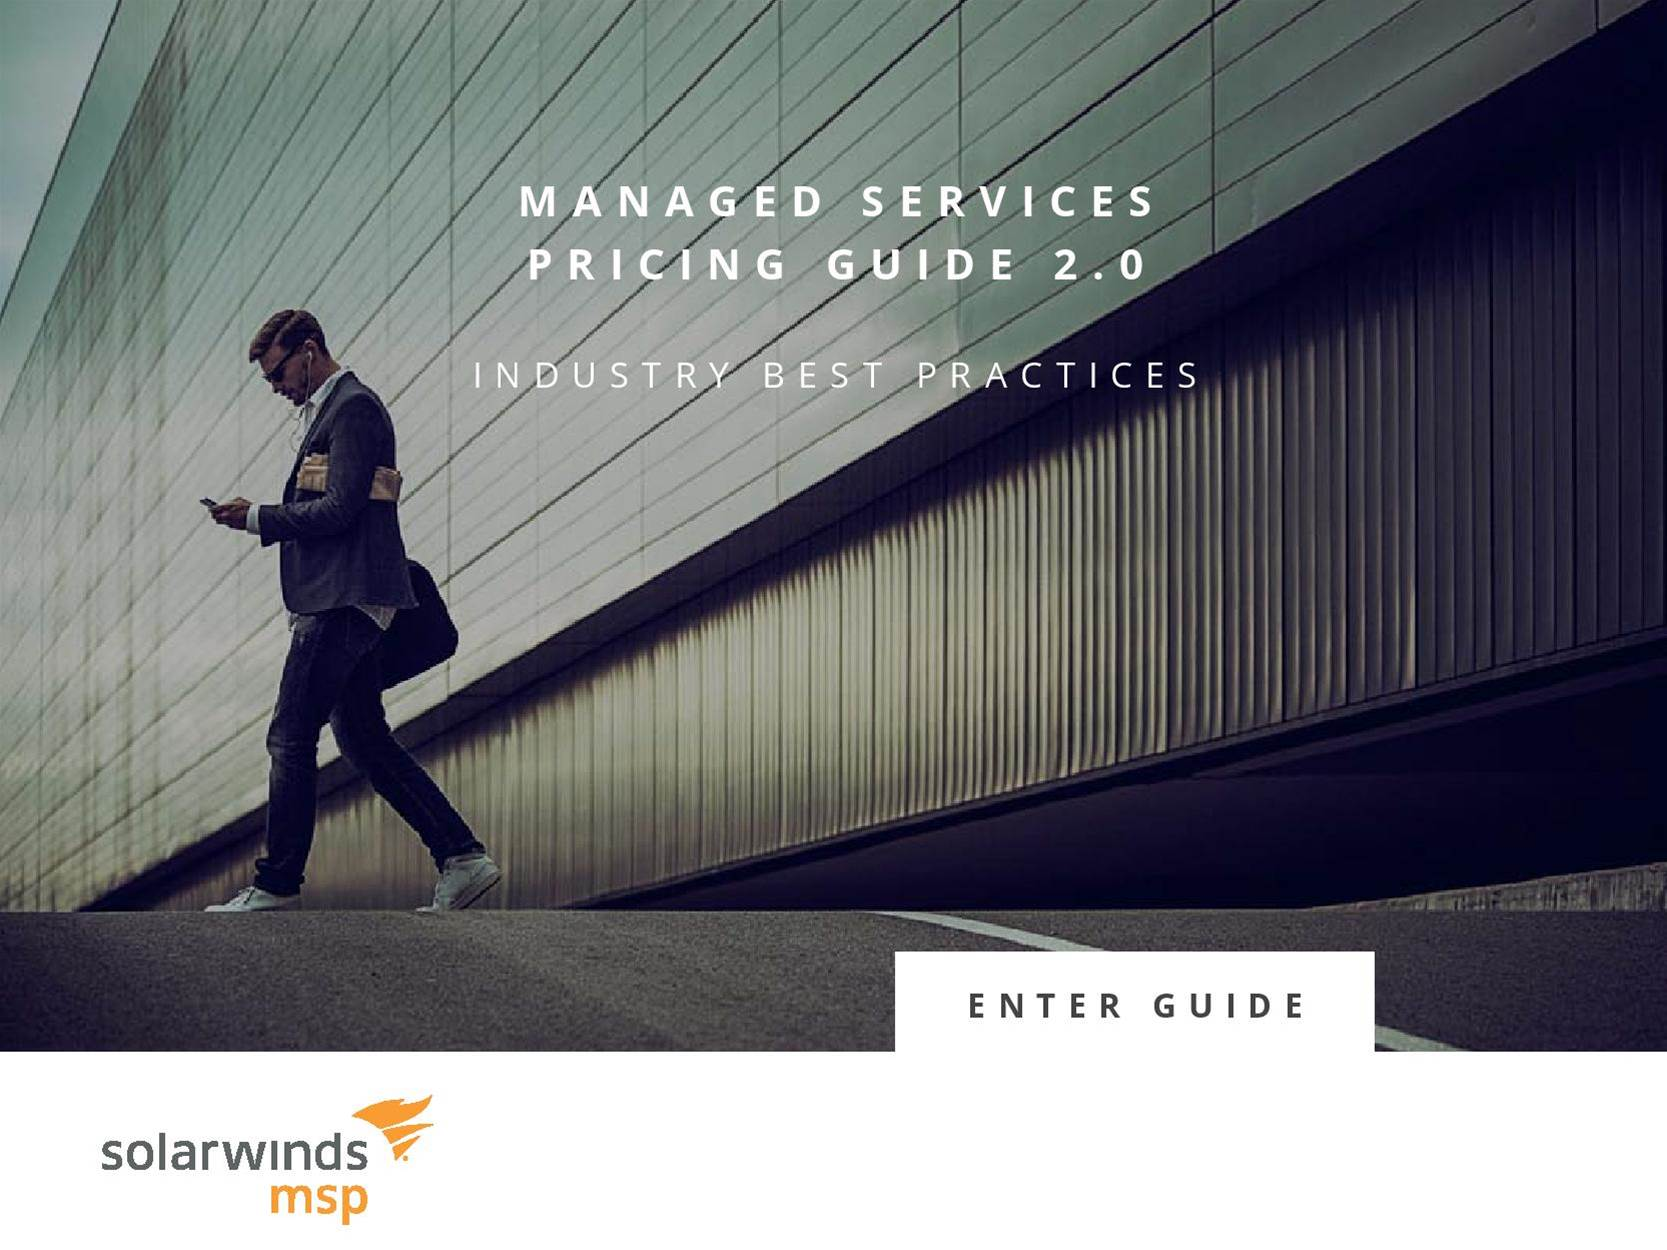 Managed Services Pricing Guide 2.0: Industry Best Practices